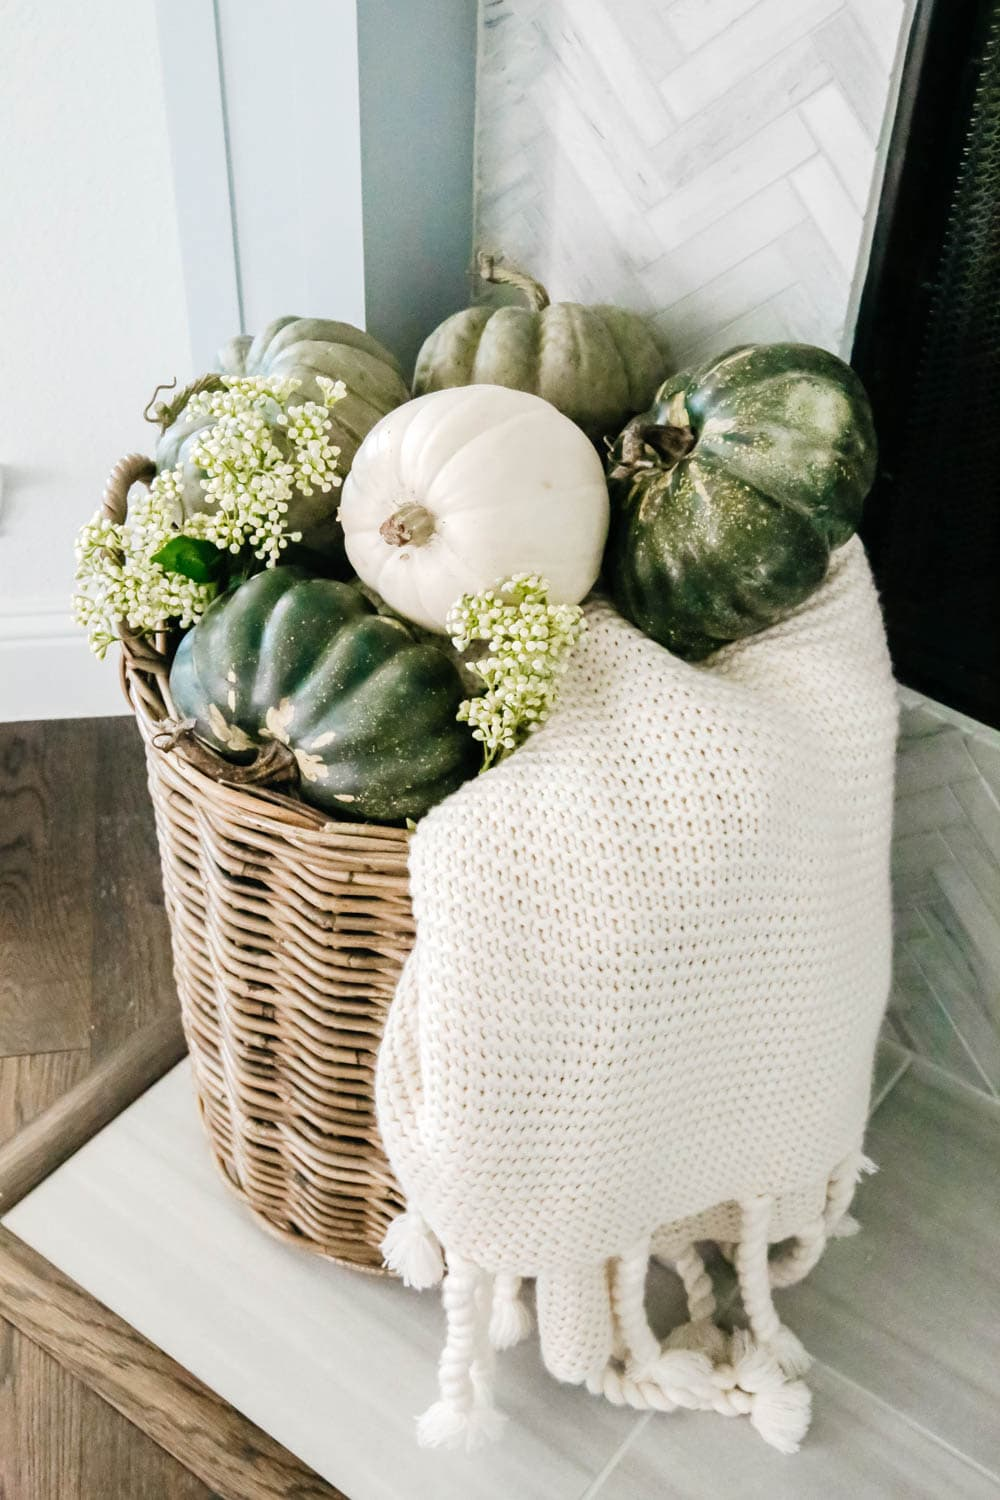 Use baskets for cozy blankets and fall decor accents next to the fireplace. #ABlissfulNest #falldecoratingideas